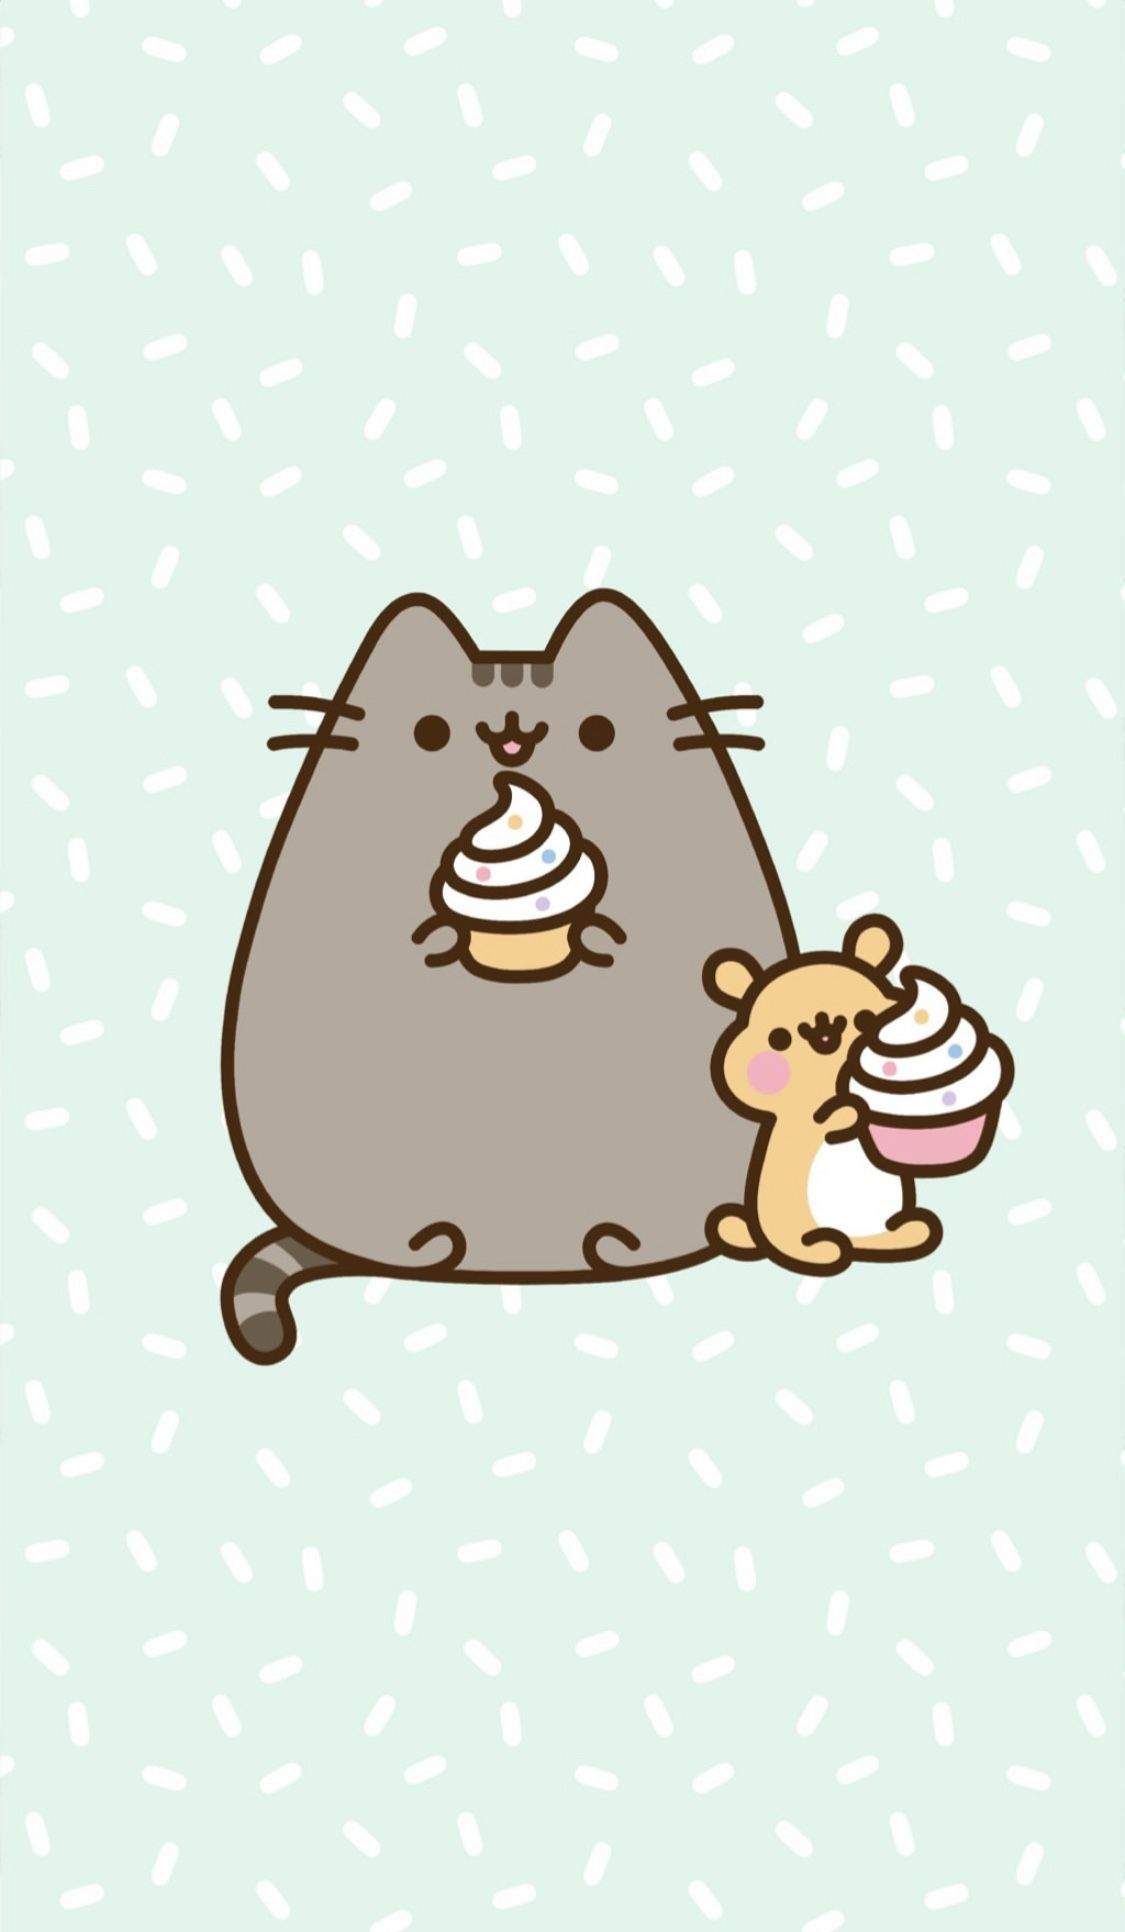 Cupcake Pusheen Wallpaper Pusheen Cute Pusheen Cat Cat Wallpaper